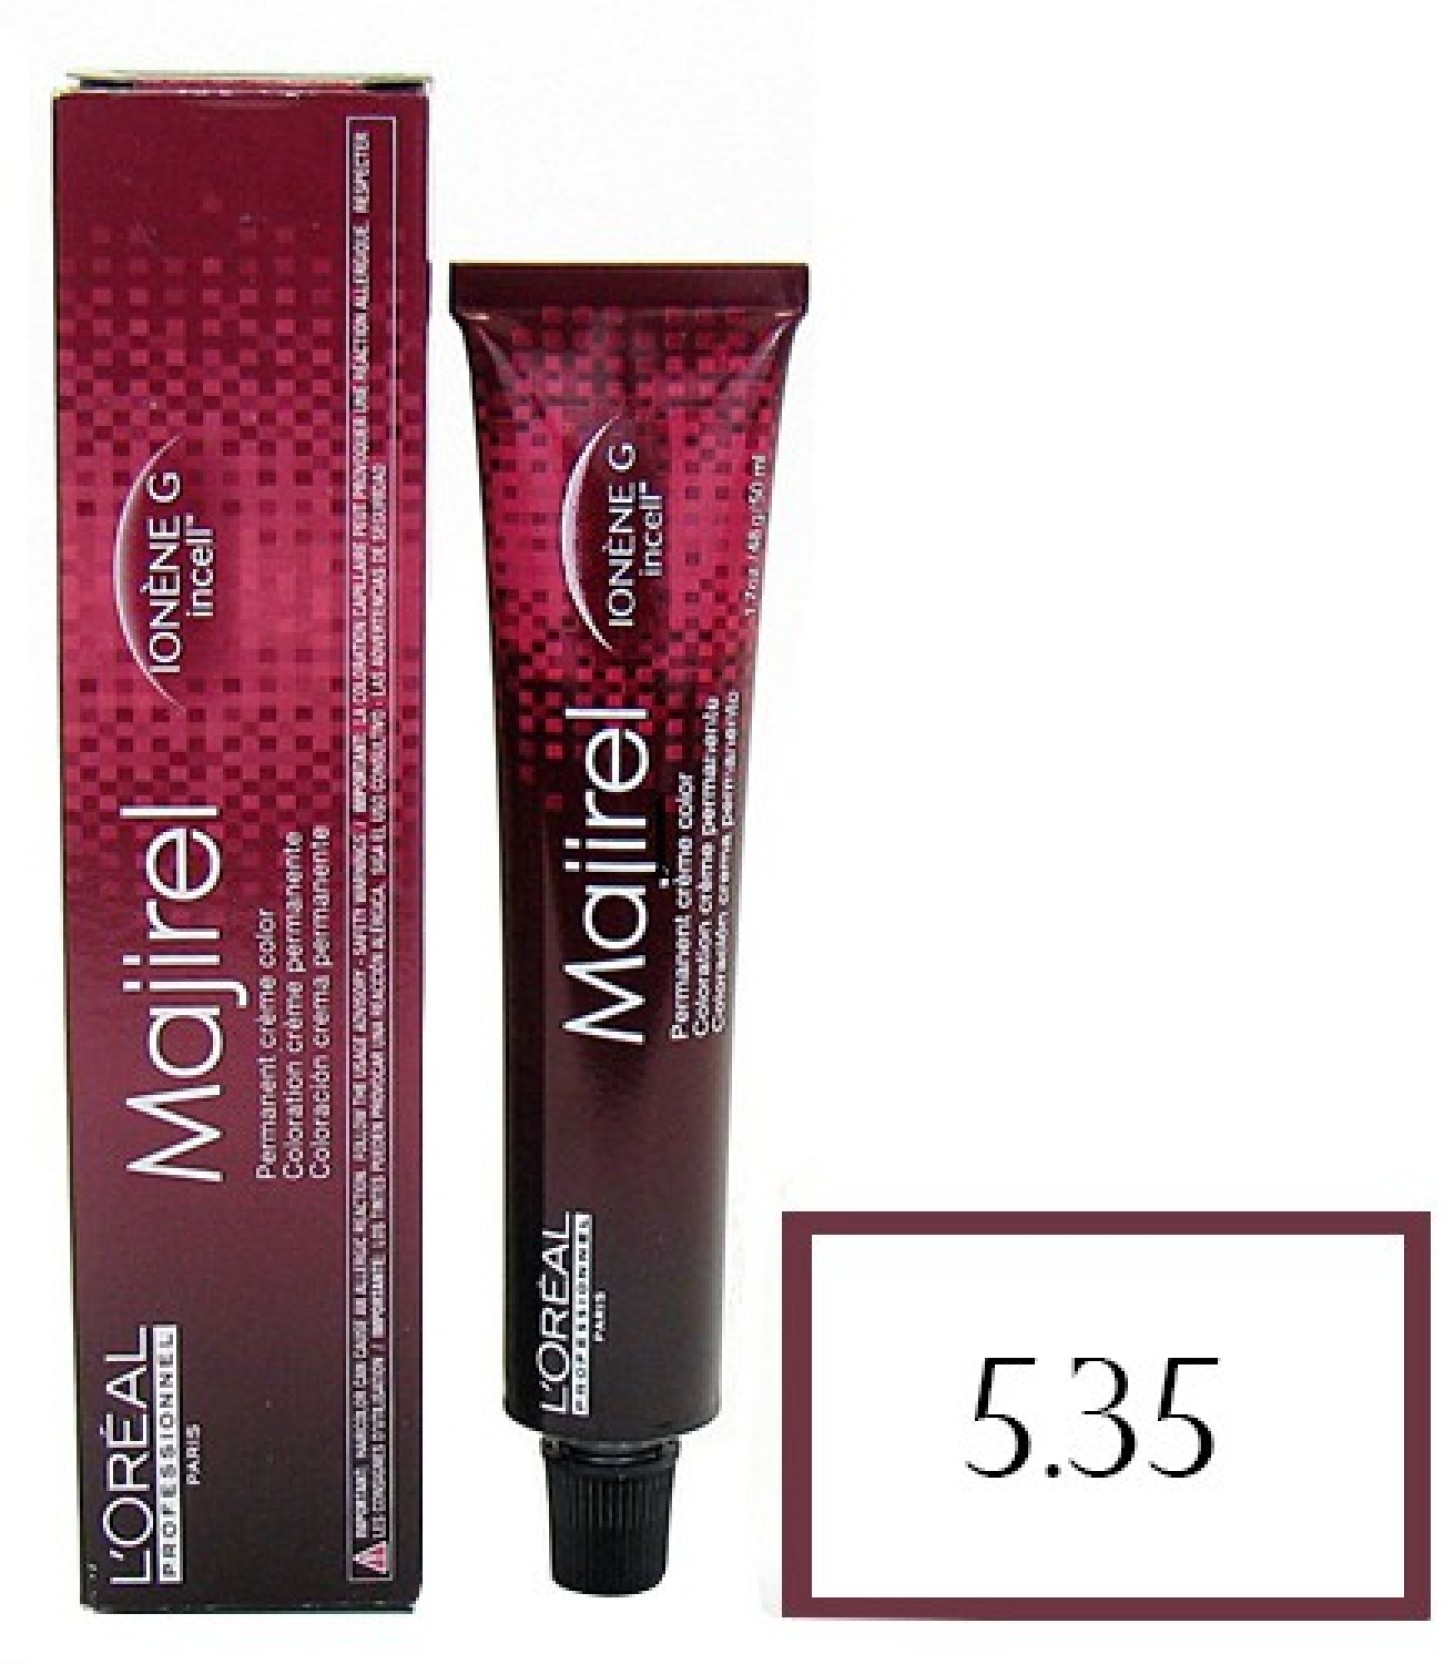 Loreal paris majirel hair color cream hair color price in india add to cart nvjuhfo Images